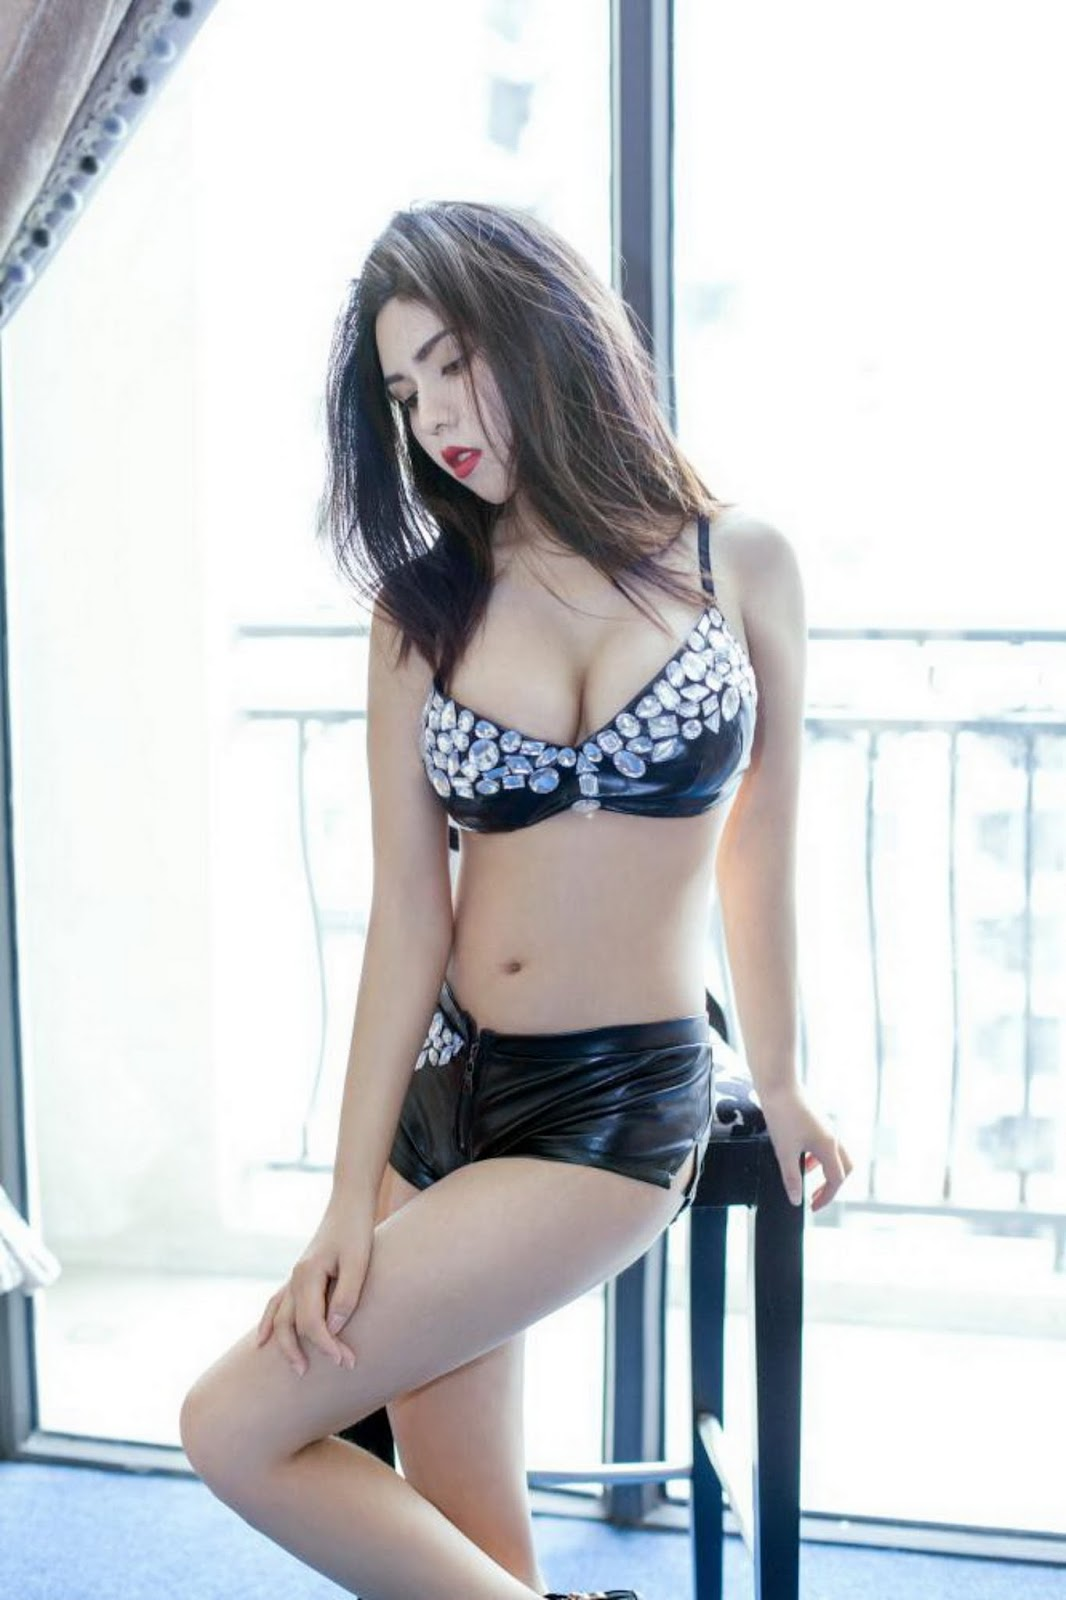 43 - Lake Model Sexy TUIGIRL NO.52 Hot